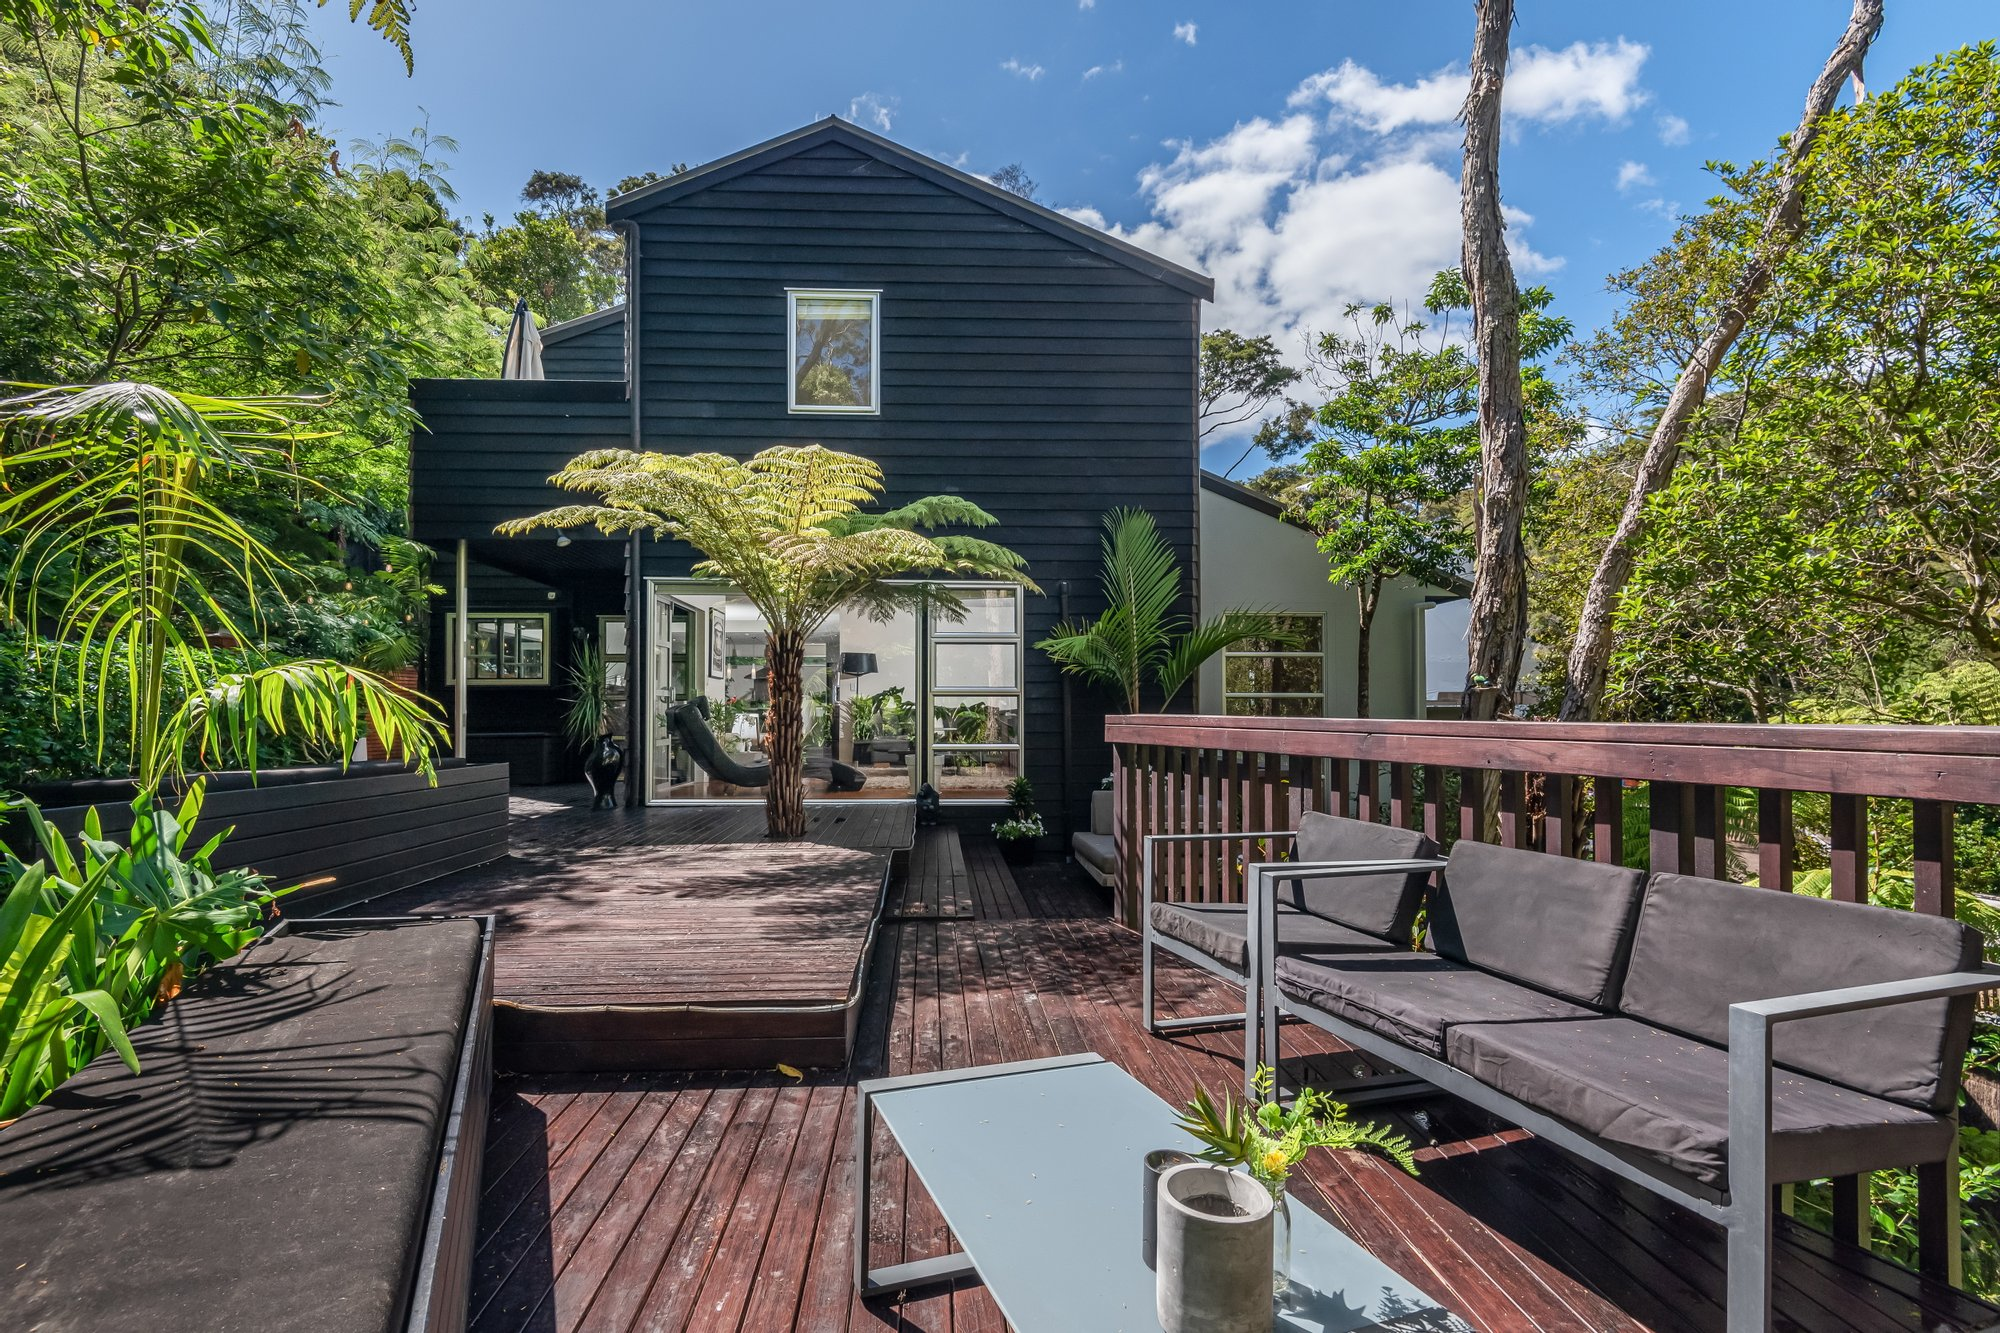 House in Saint Heliers, Auckland, New Zealand 1